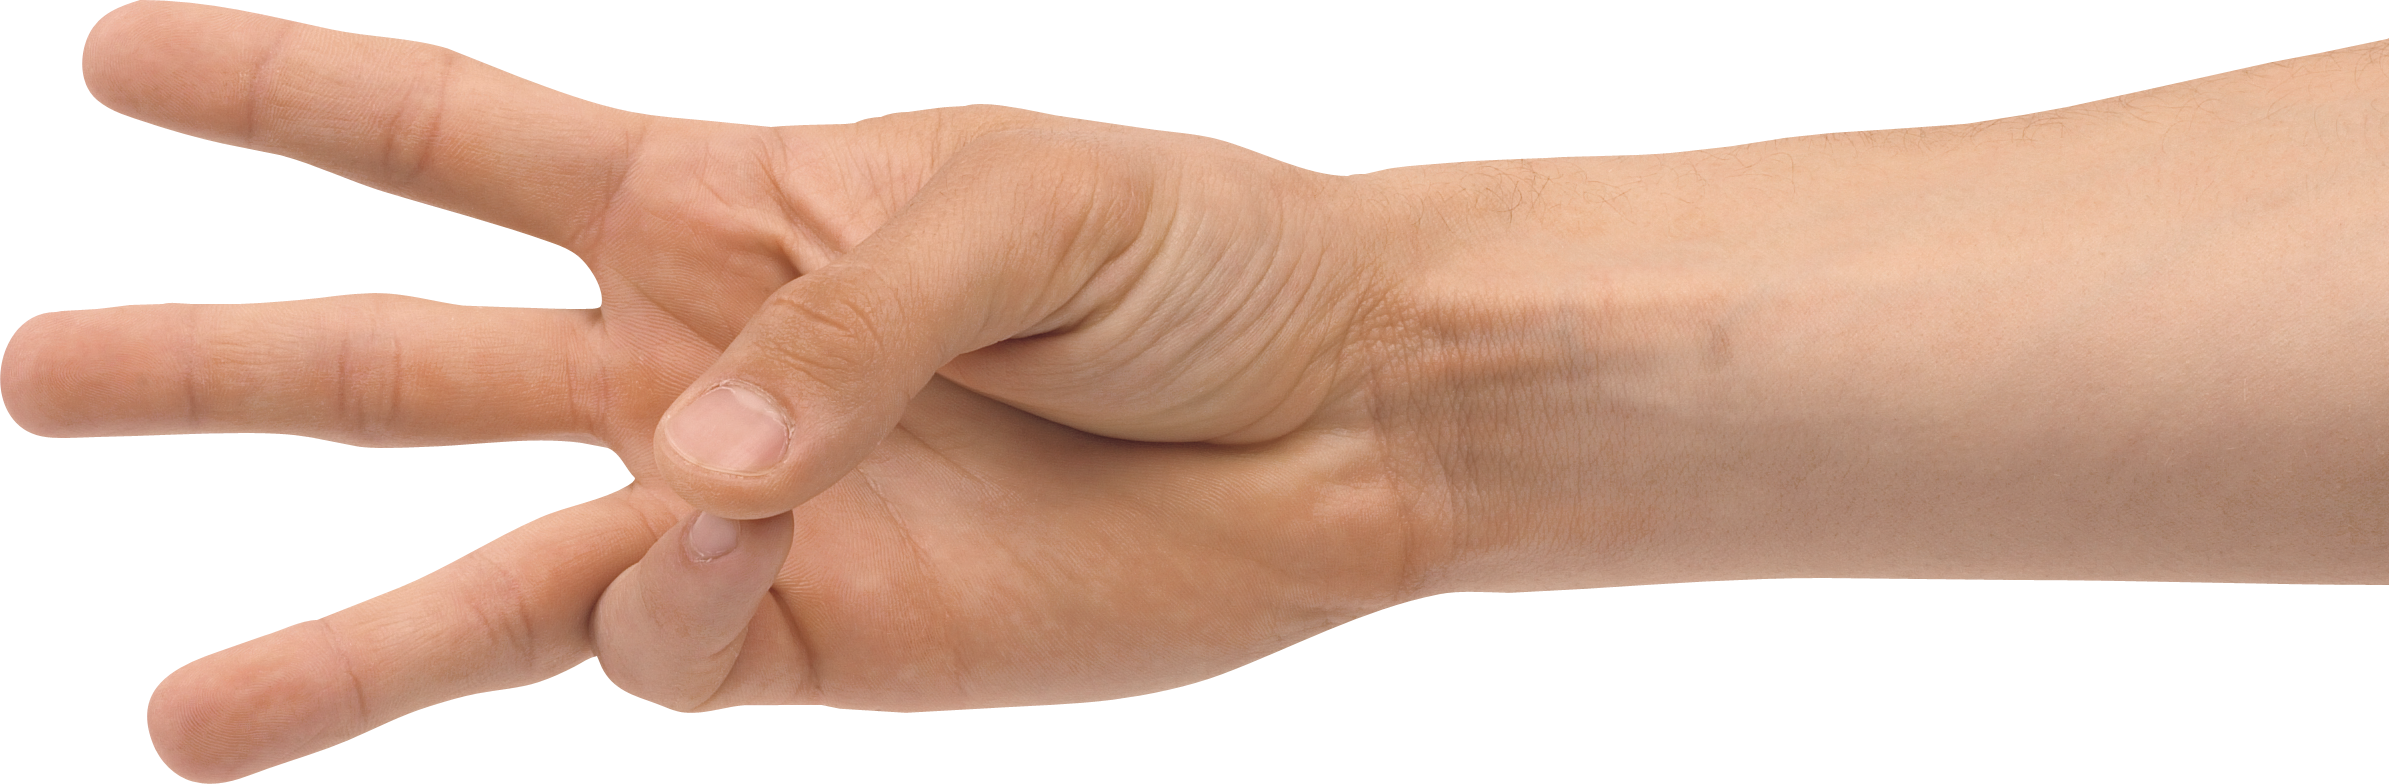 Fingers clipart three finger. Hand png image purepng